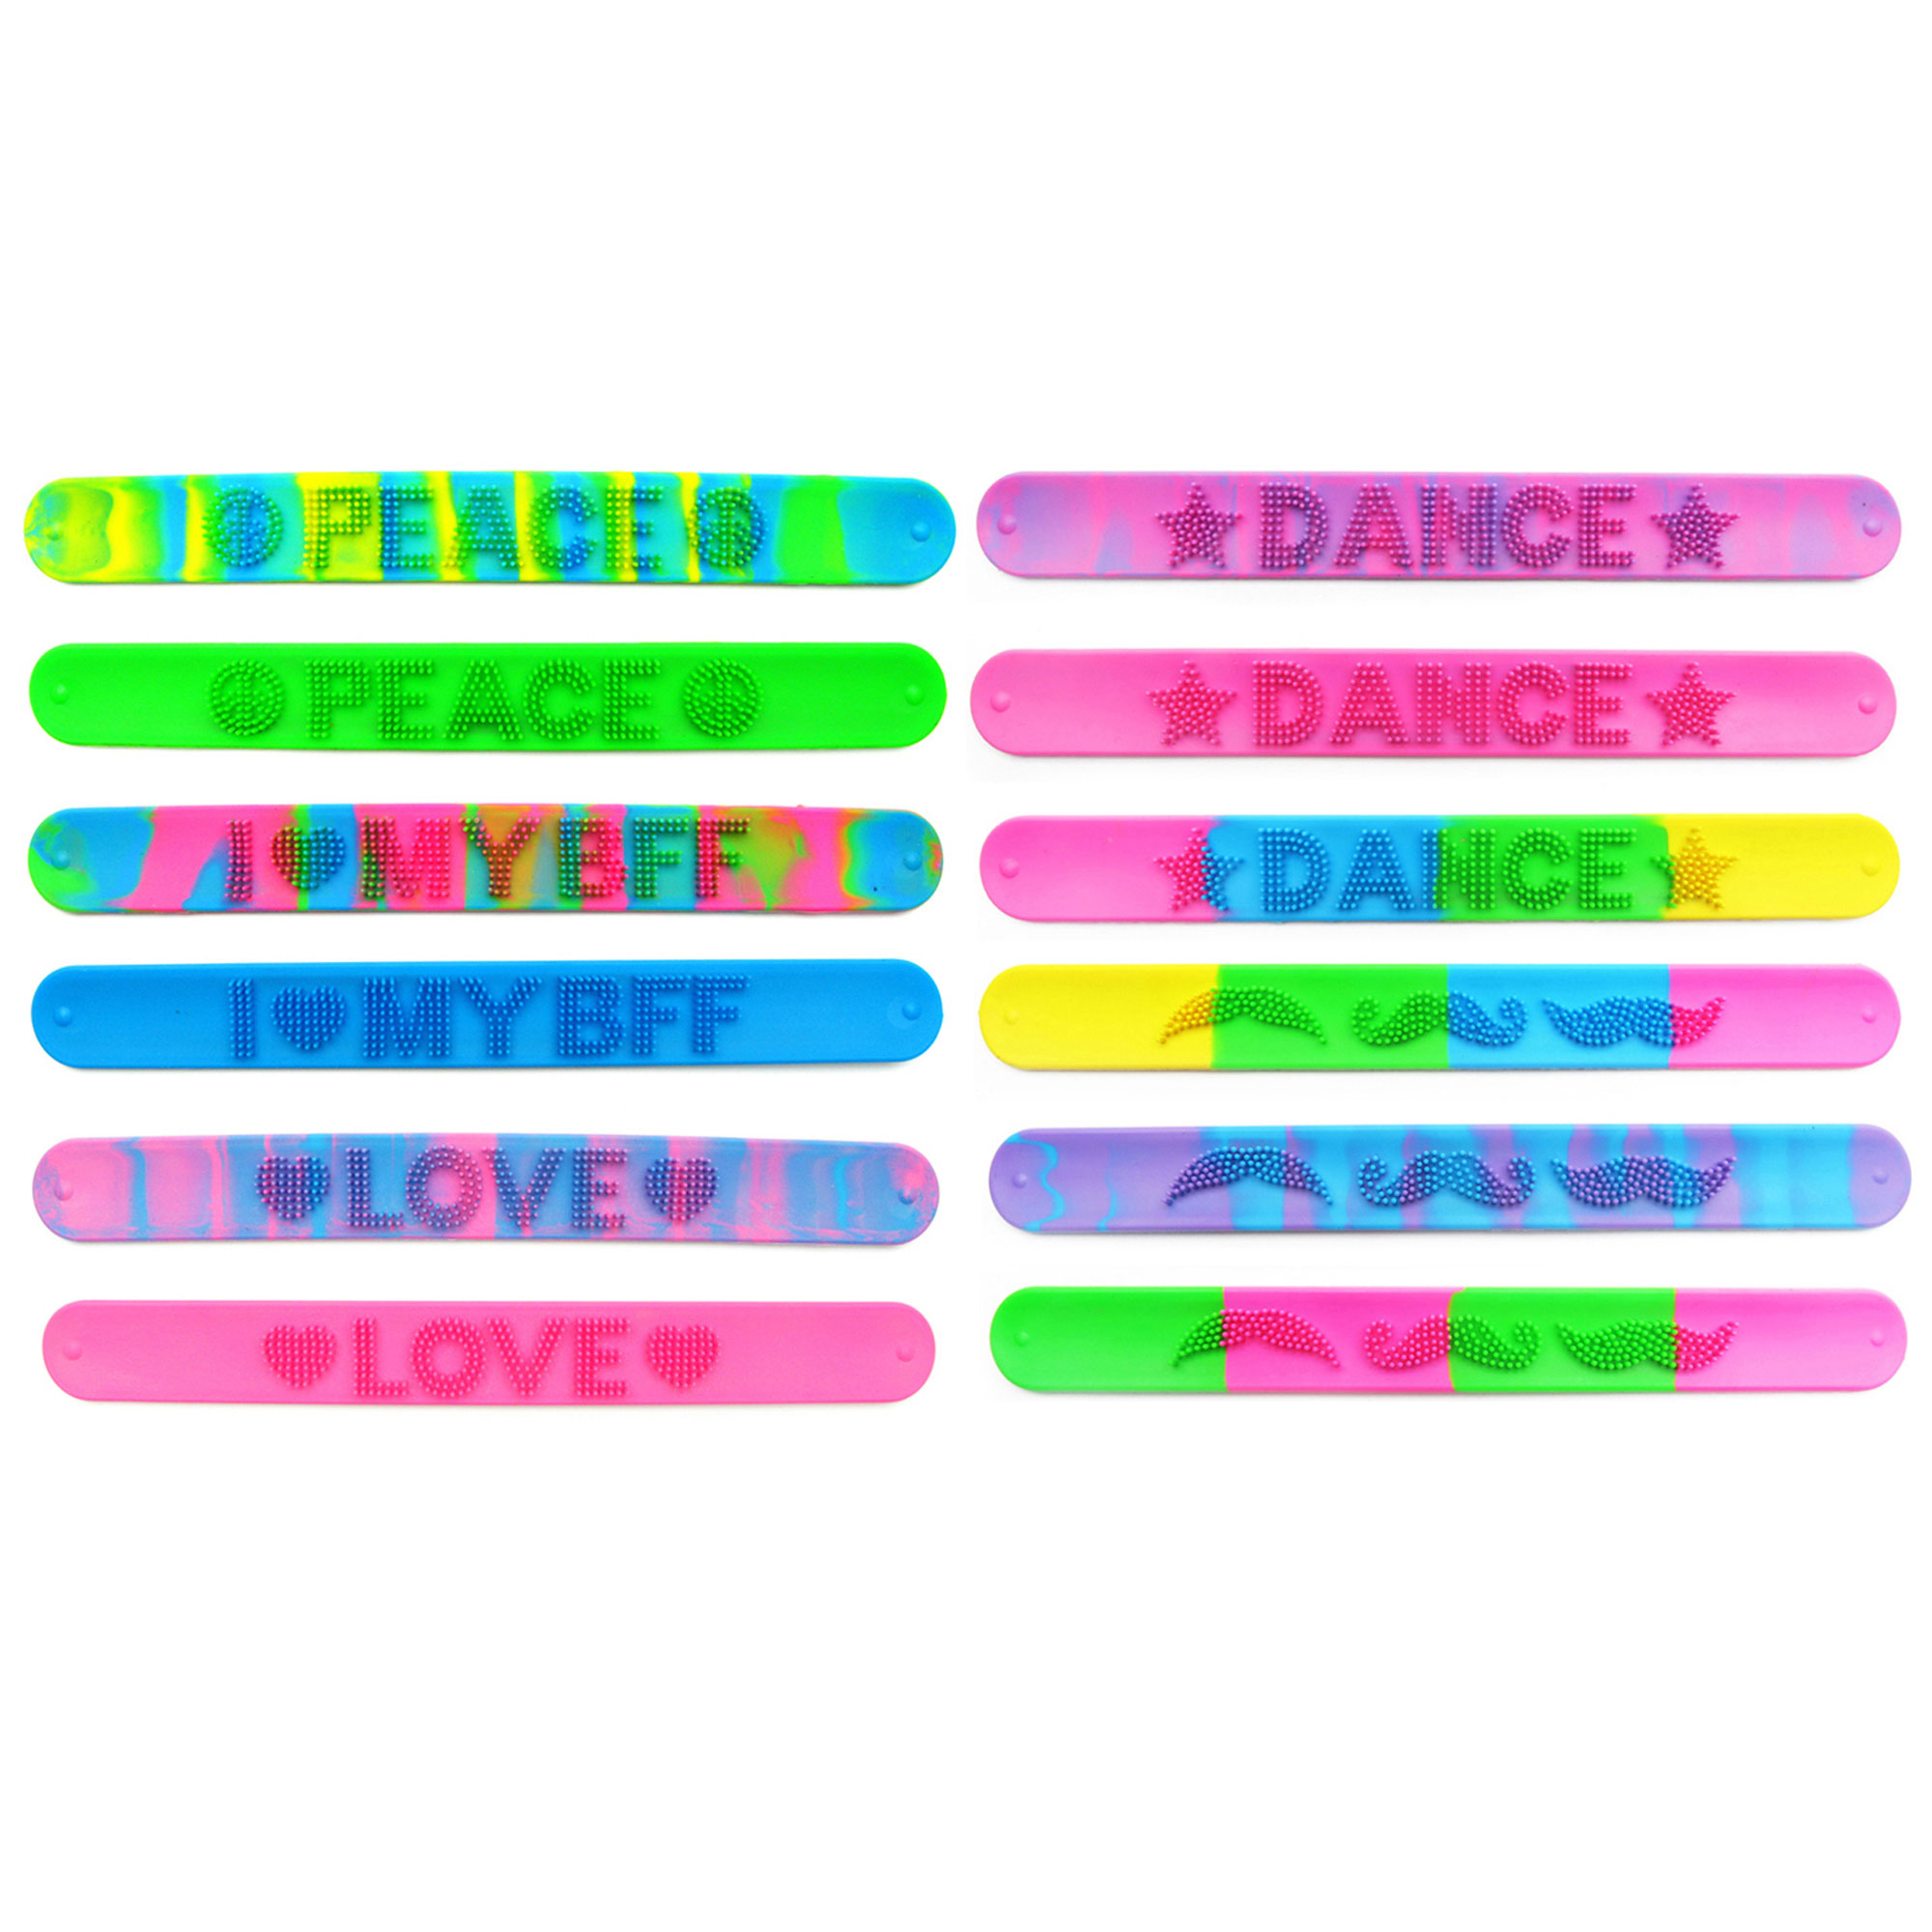 Frogsac Set of 12 Soft Spikes Words/Icons Silicone Slap Bracelets - Great Party Favors